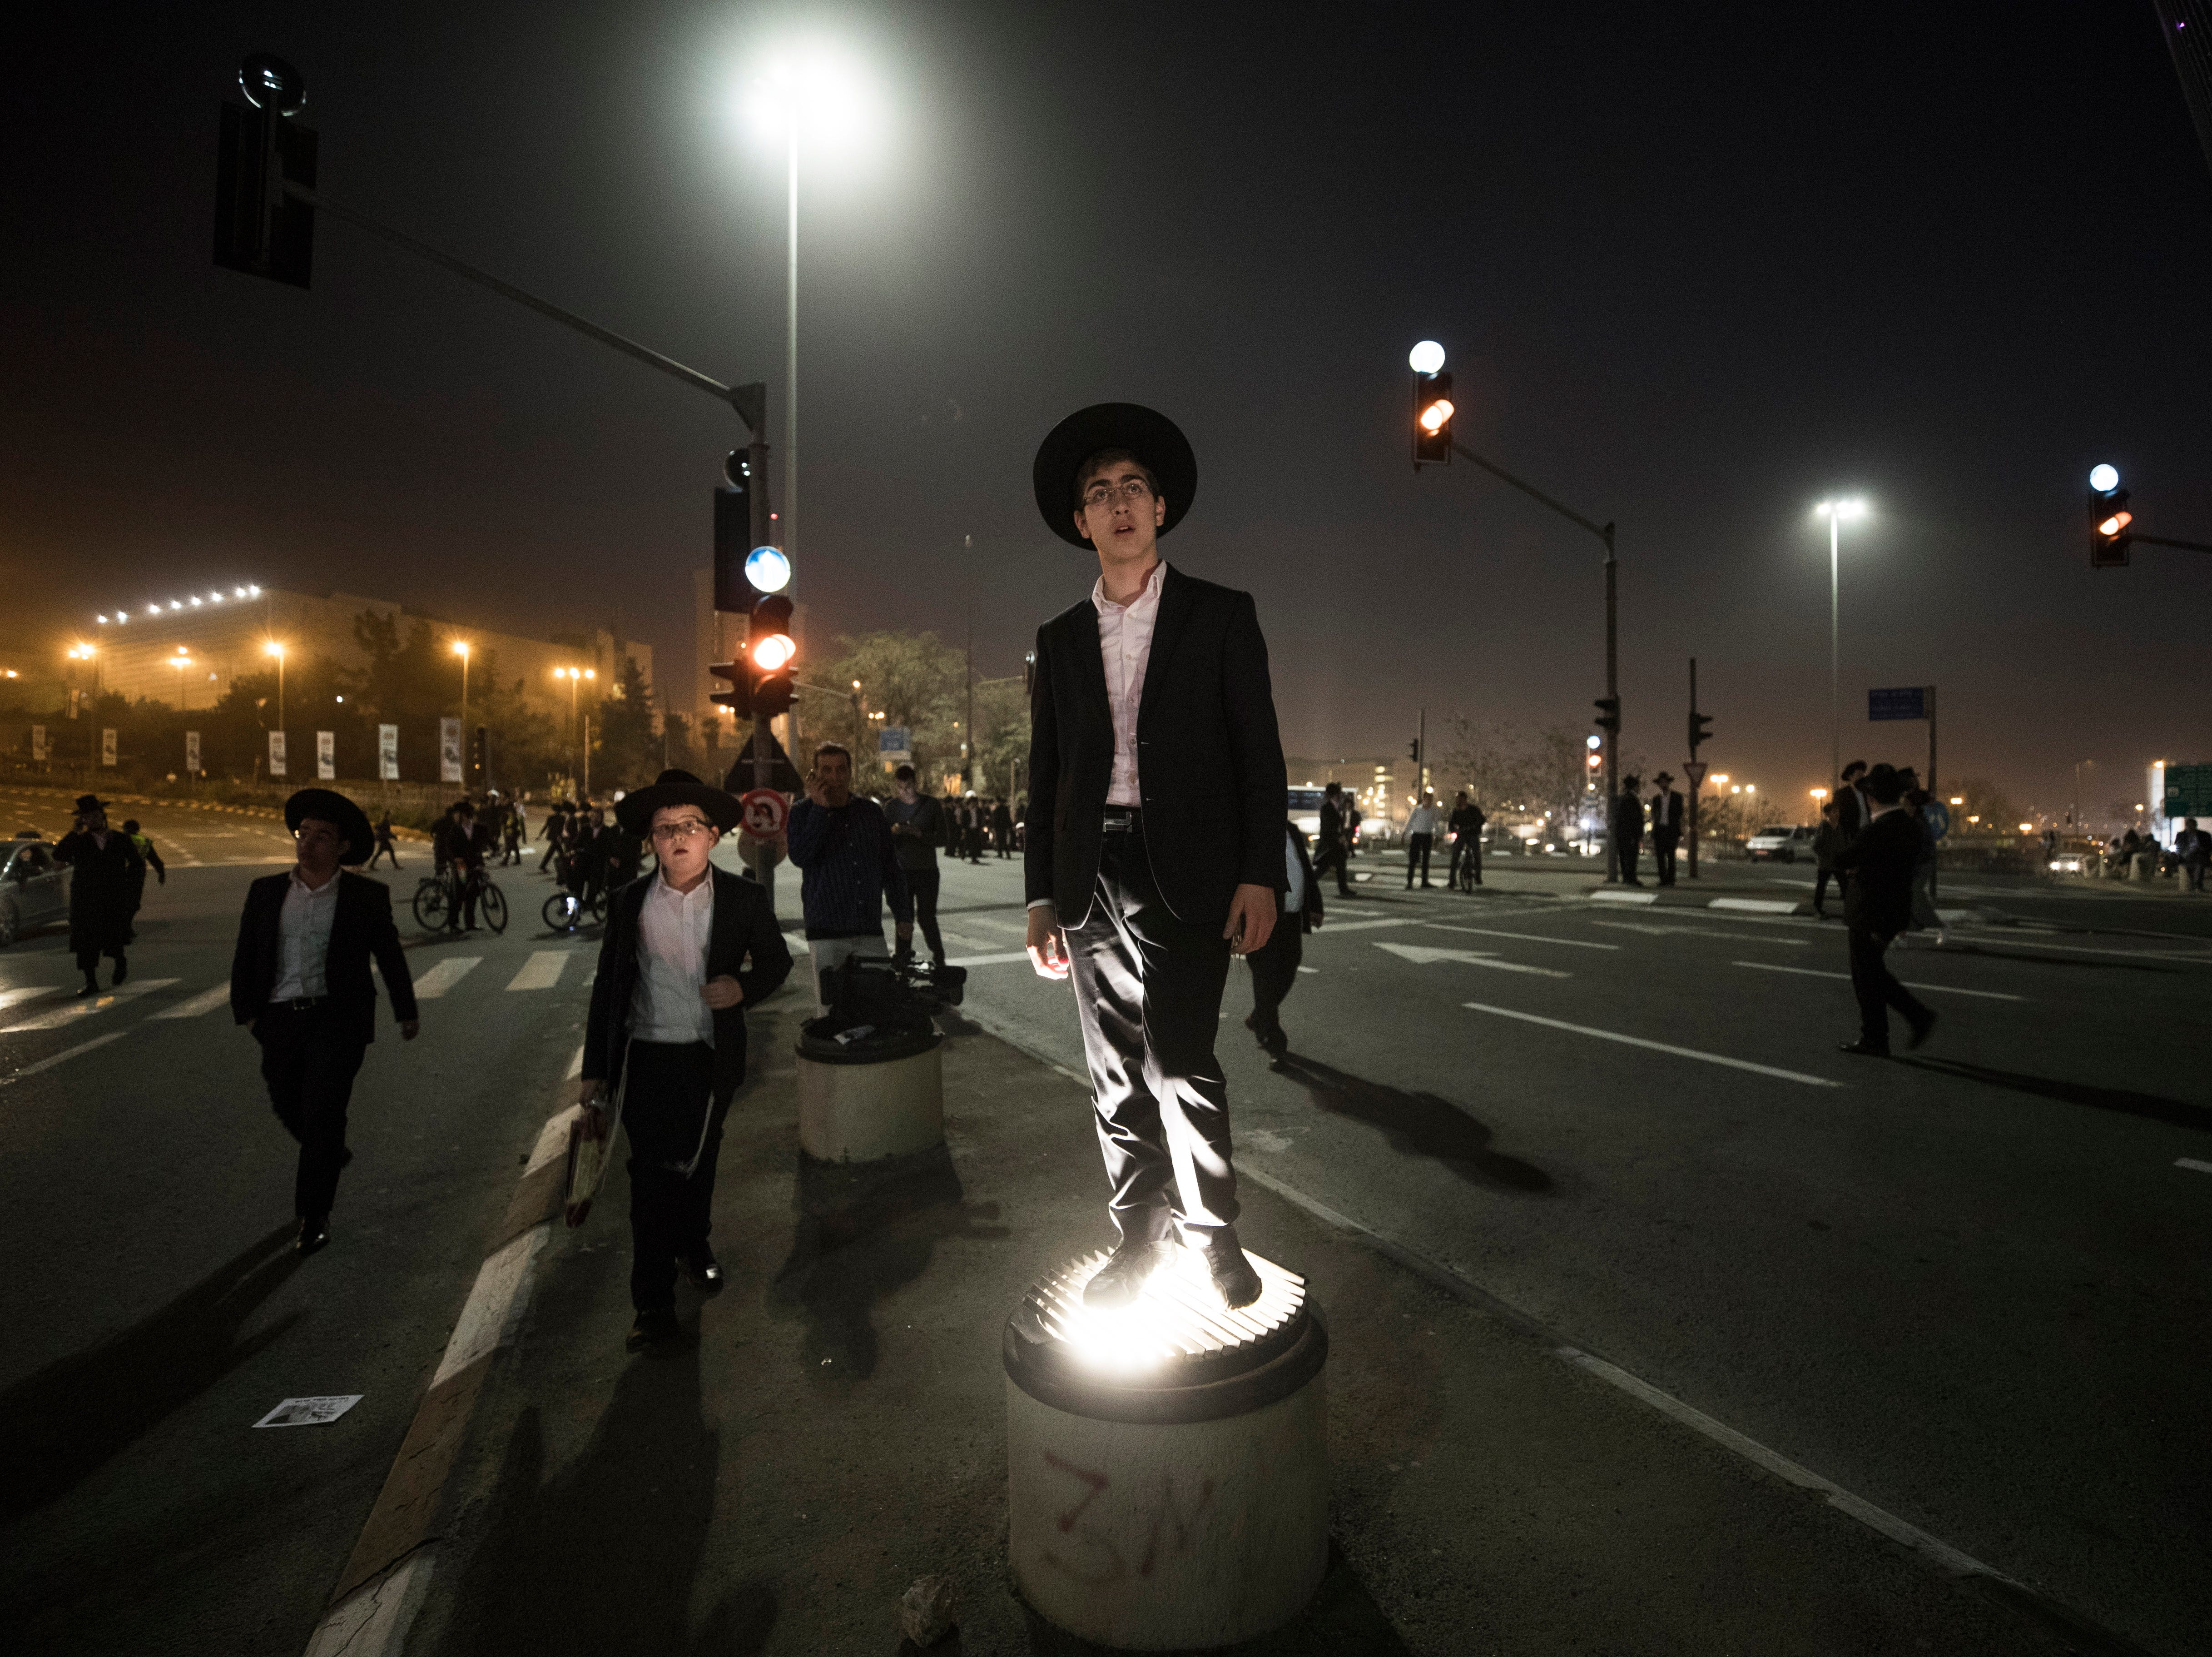 March 8, 2018: Ultra-Orthodox Jewish men block the main entrance to Jerusalem, Israel during a demonstrator against army conscription. The Ultra-Orthodox community in Israel is holding ongoing protests against army conscription.